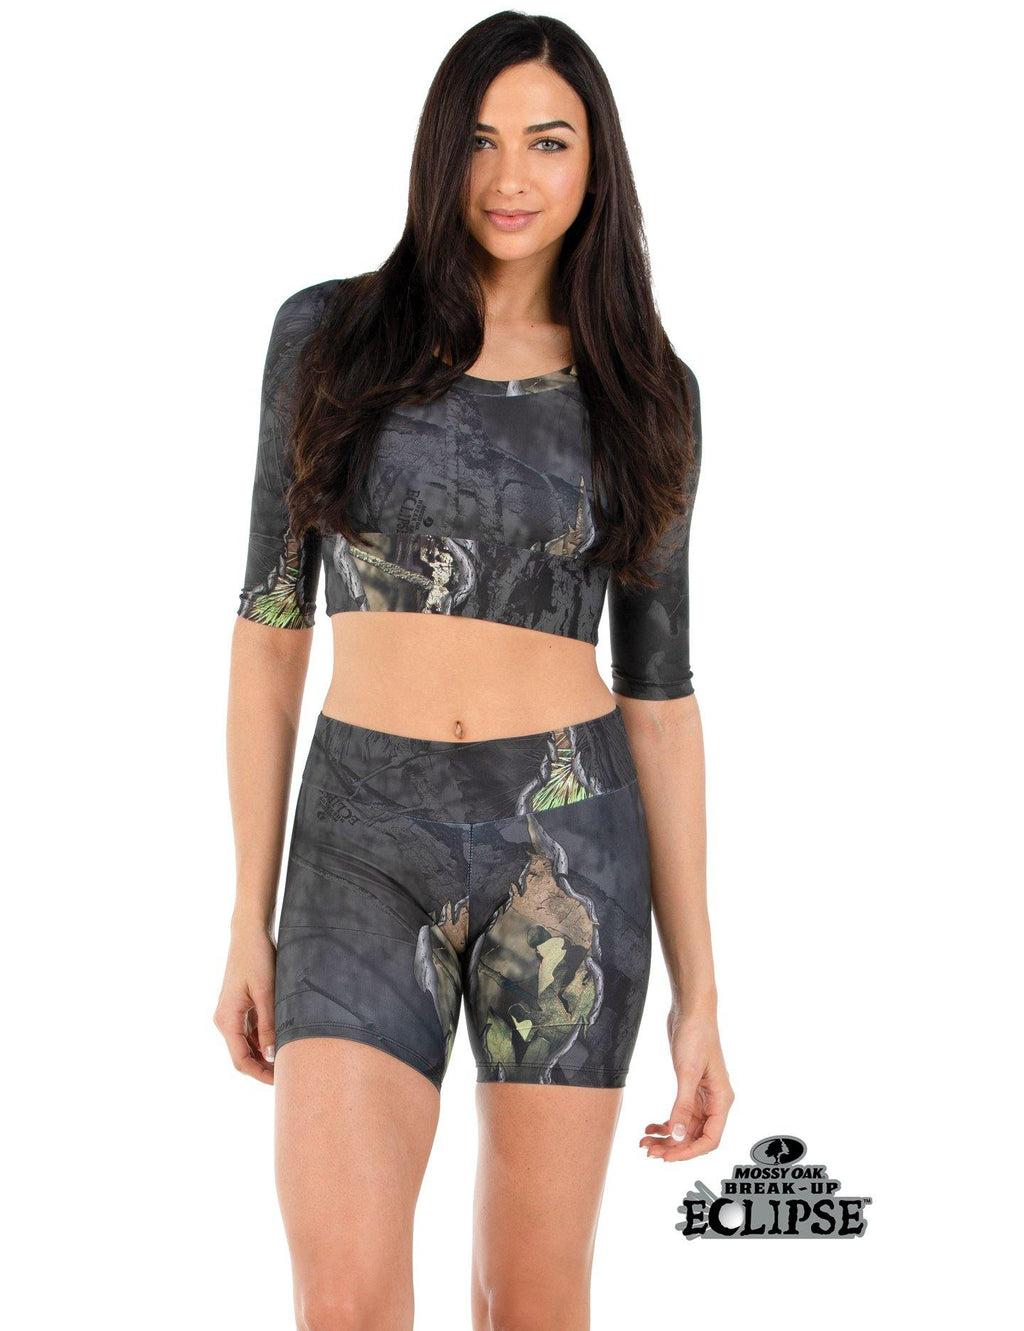 Apsara Cropped Top, Mossy Oak Break-Up Eclipse